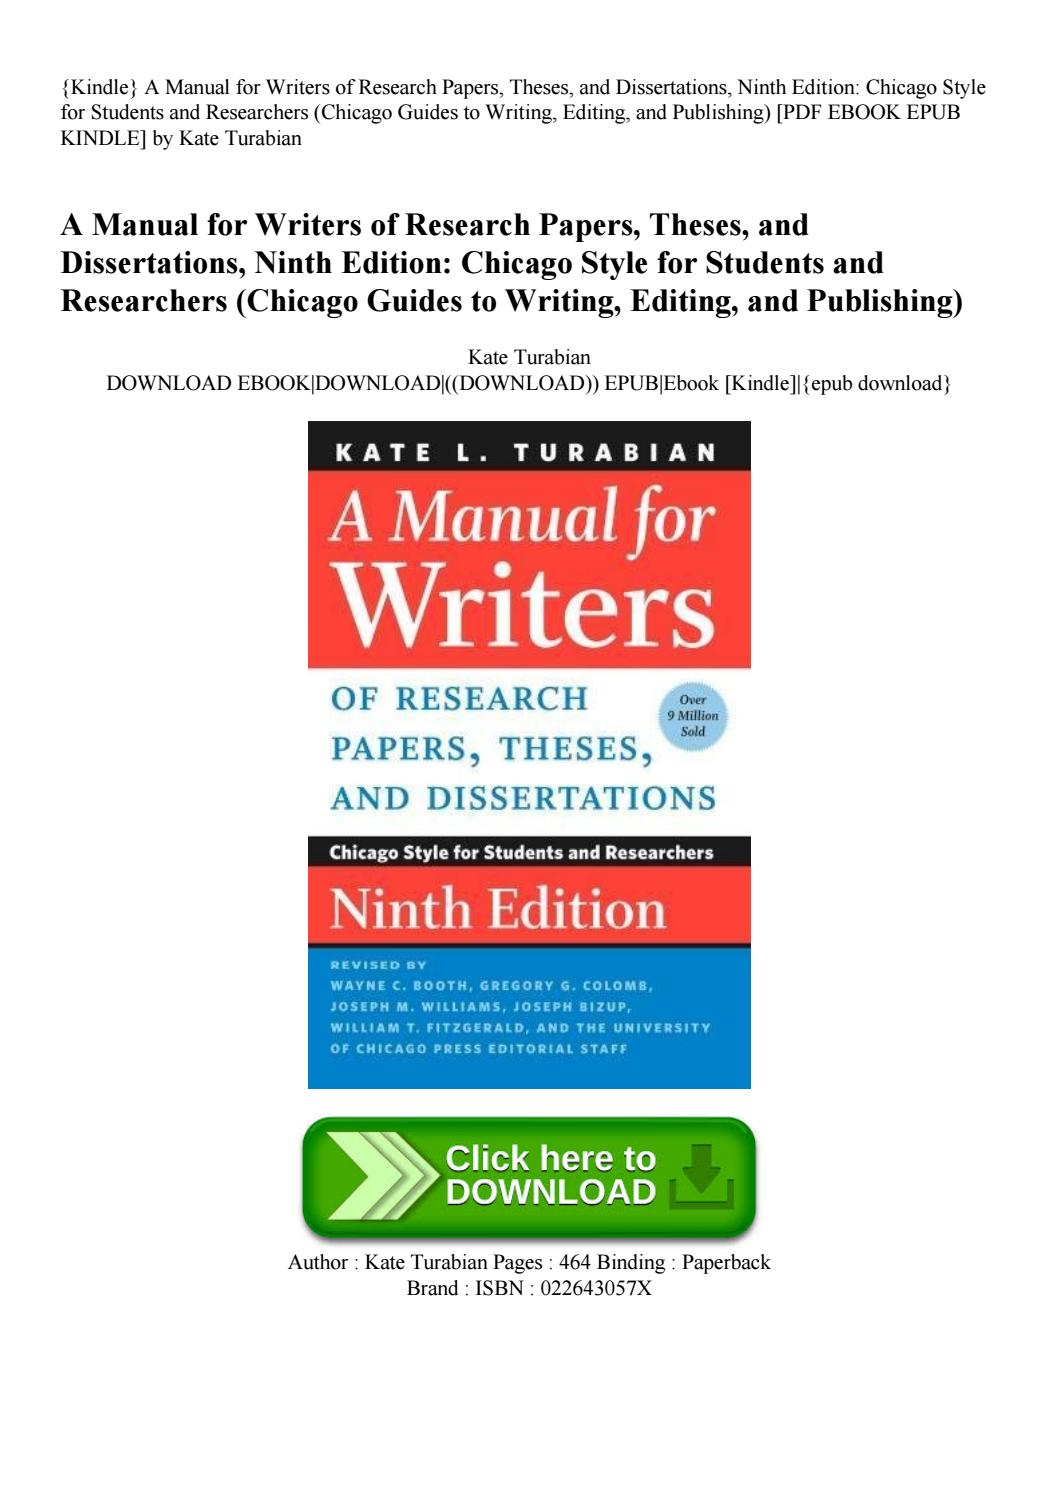 012 Research Paper Manual For Writers Of Papers Theses And Dissertations Page 1 Magnificent A 8th Ed Pdf Full